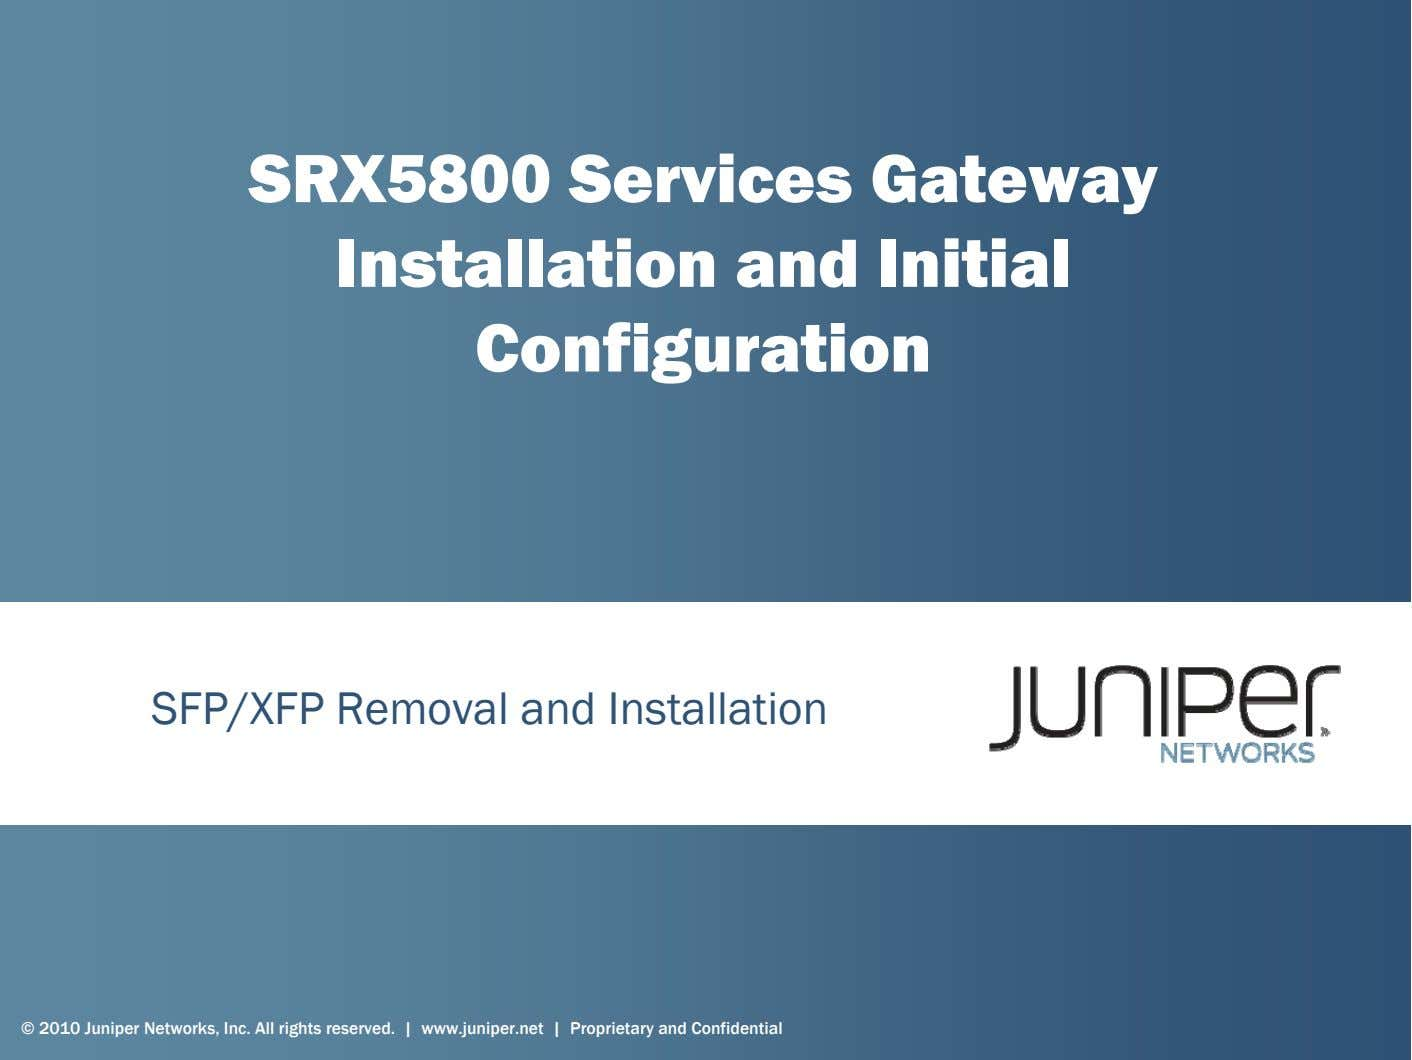 SRX5800 Services Gateway Installation and Initial Configuration SFP/XFP Removal and Installation © 2010 Juniper